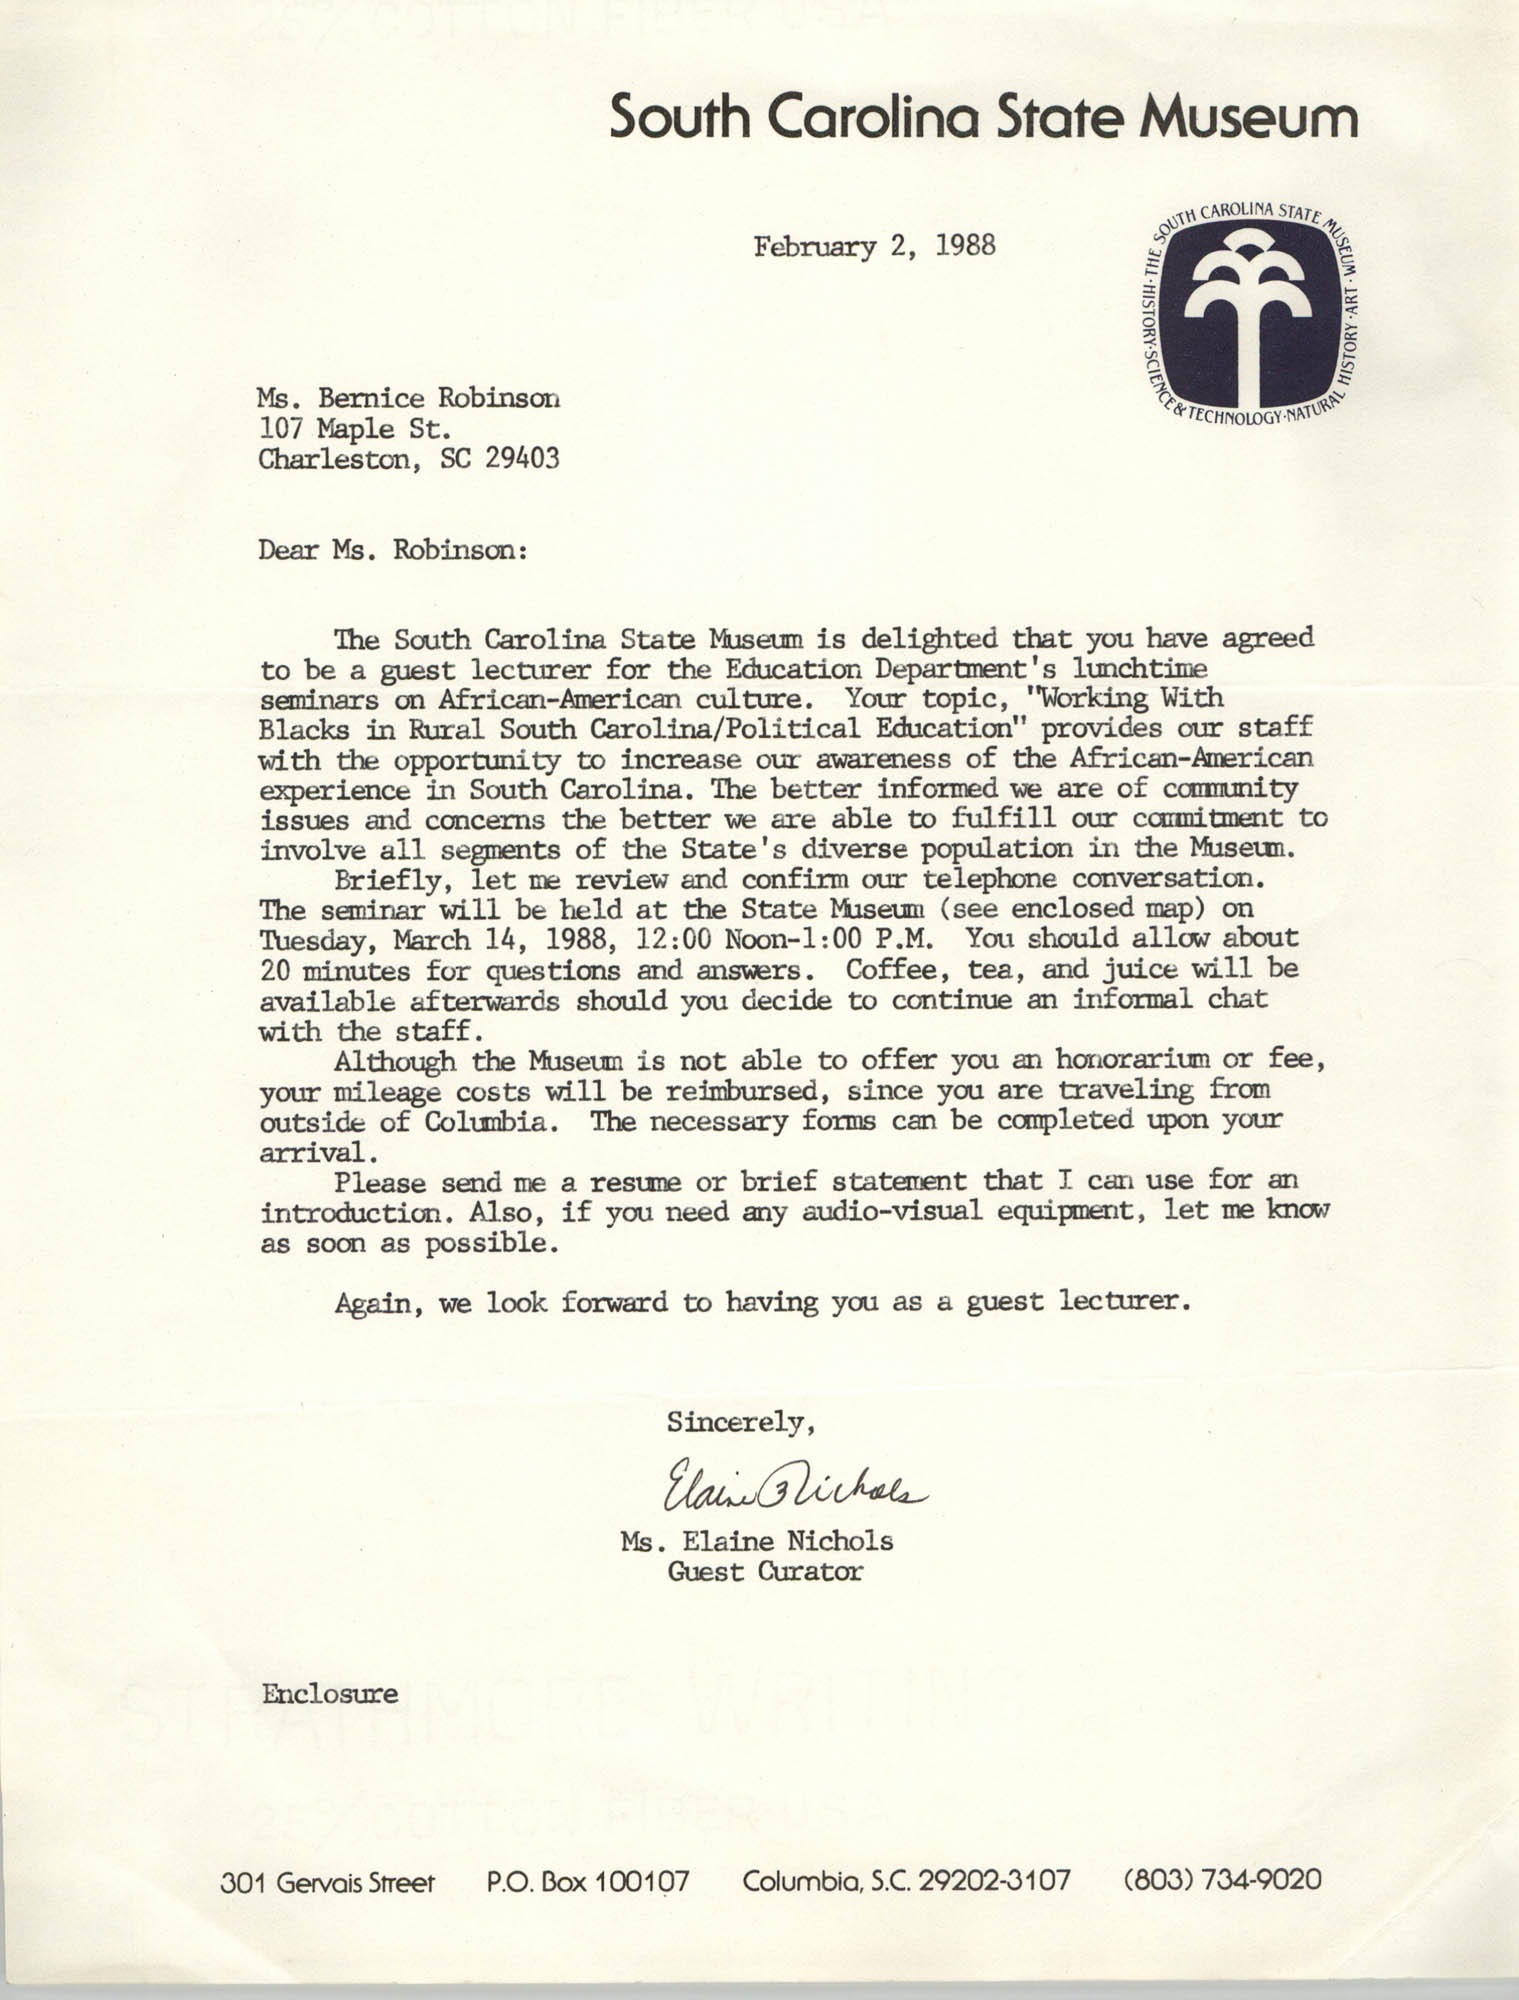 Letter from Elaine Nichols to Bernice Robinson, February 2, 1988